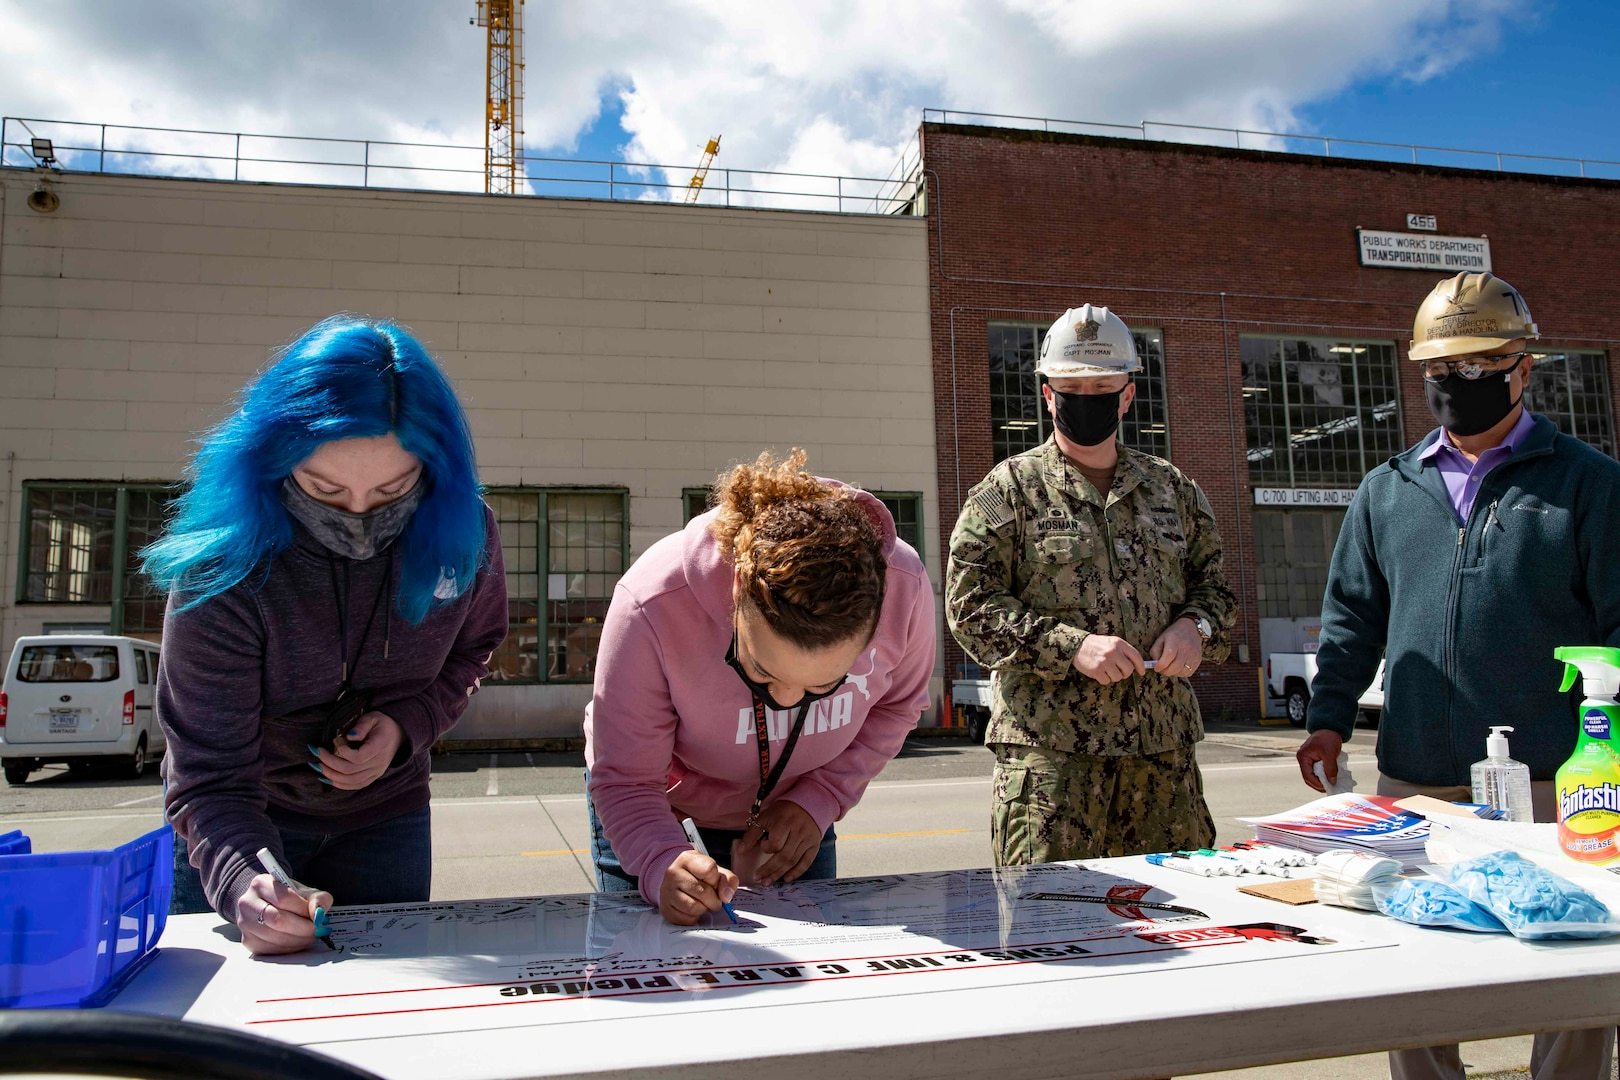 Puget Sound Naval Shipyard & Intermediate Maintenance Facility leaders and employees signed C.A.R.E. pledges and banners during two events May 18, 2021, at locations throughout the shipyard in Bremerton, Washington.